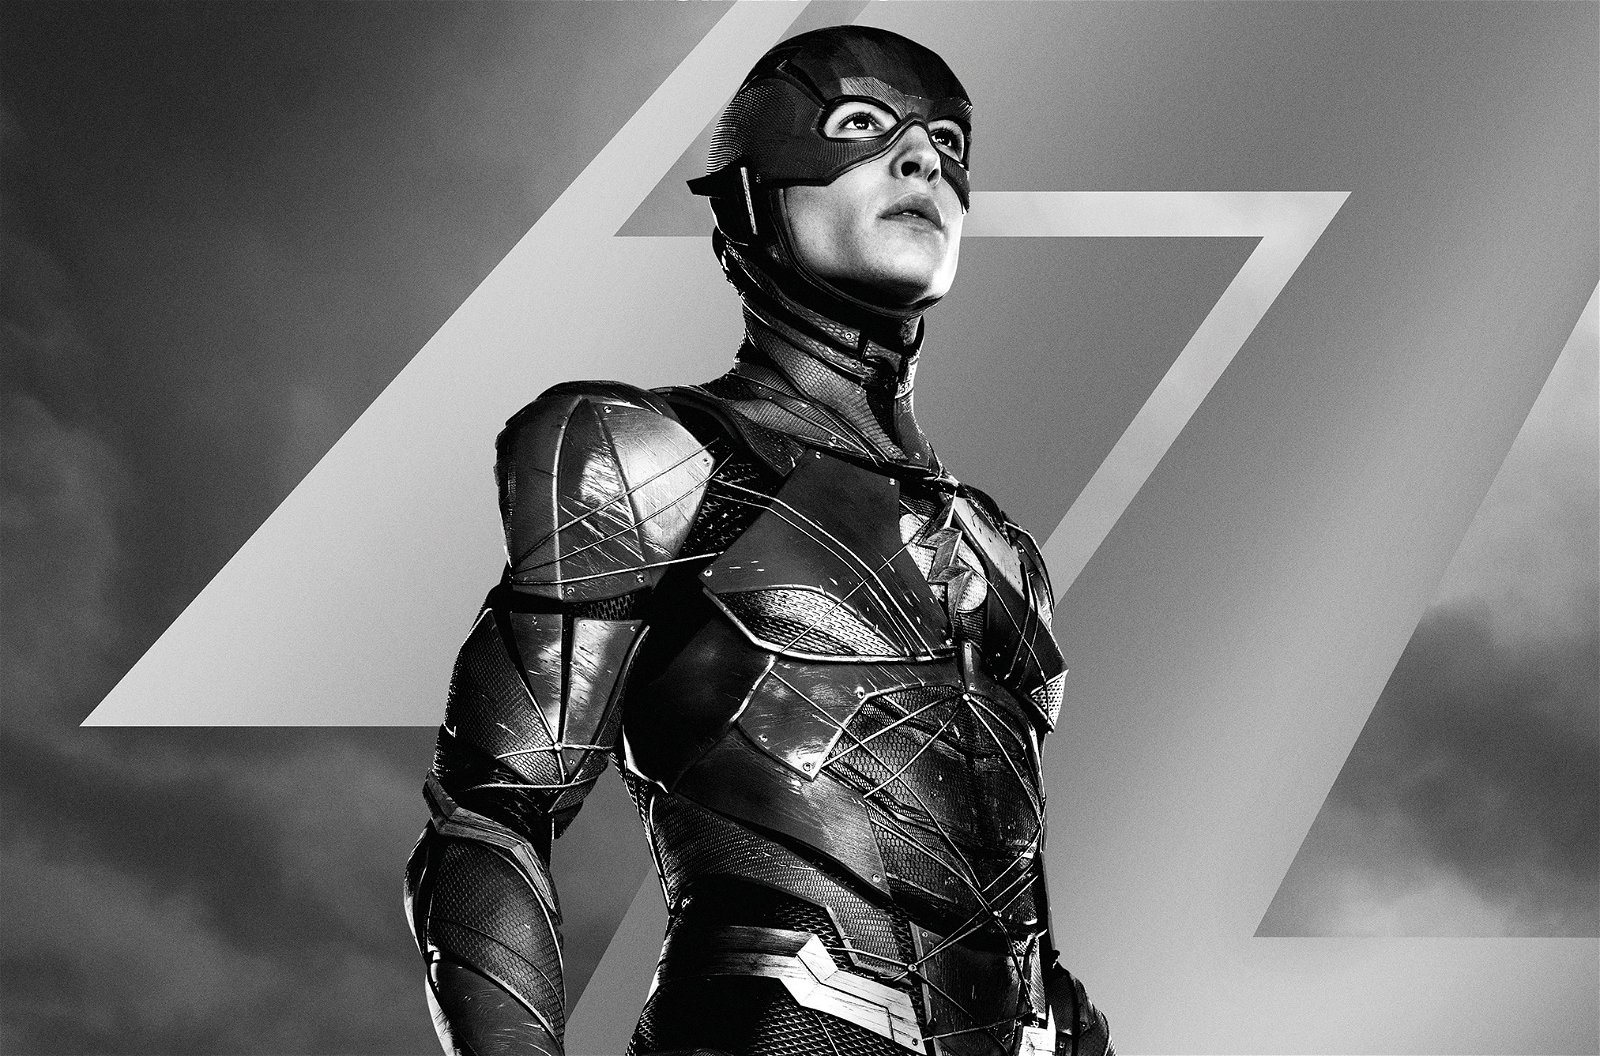 The Flash, Snyder Cut, Zack Snyder's Justice League